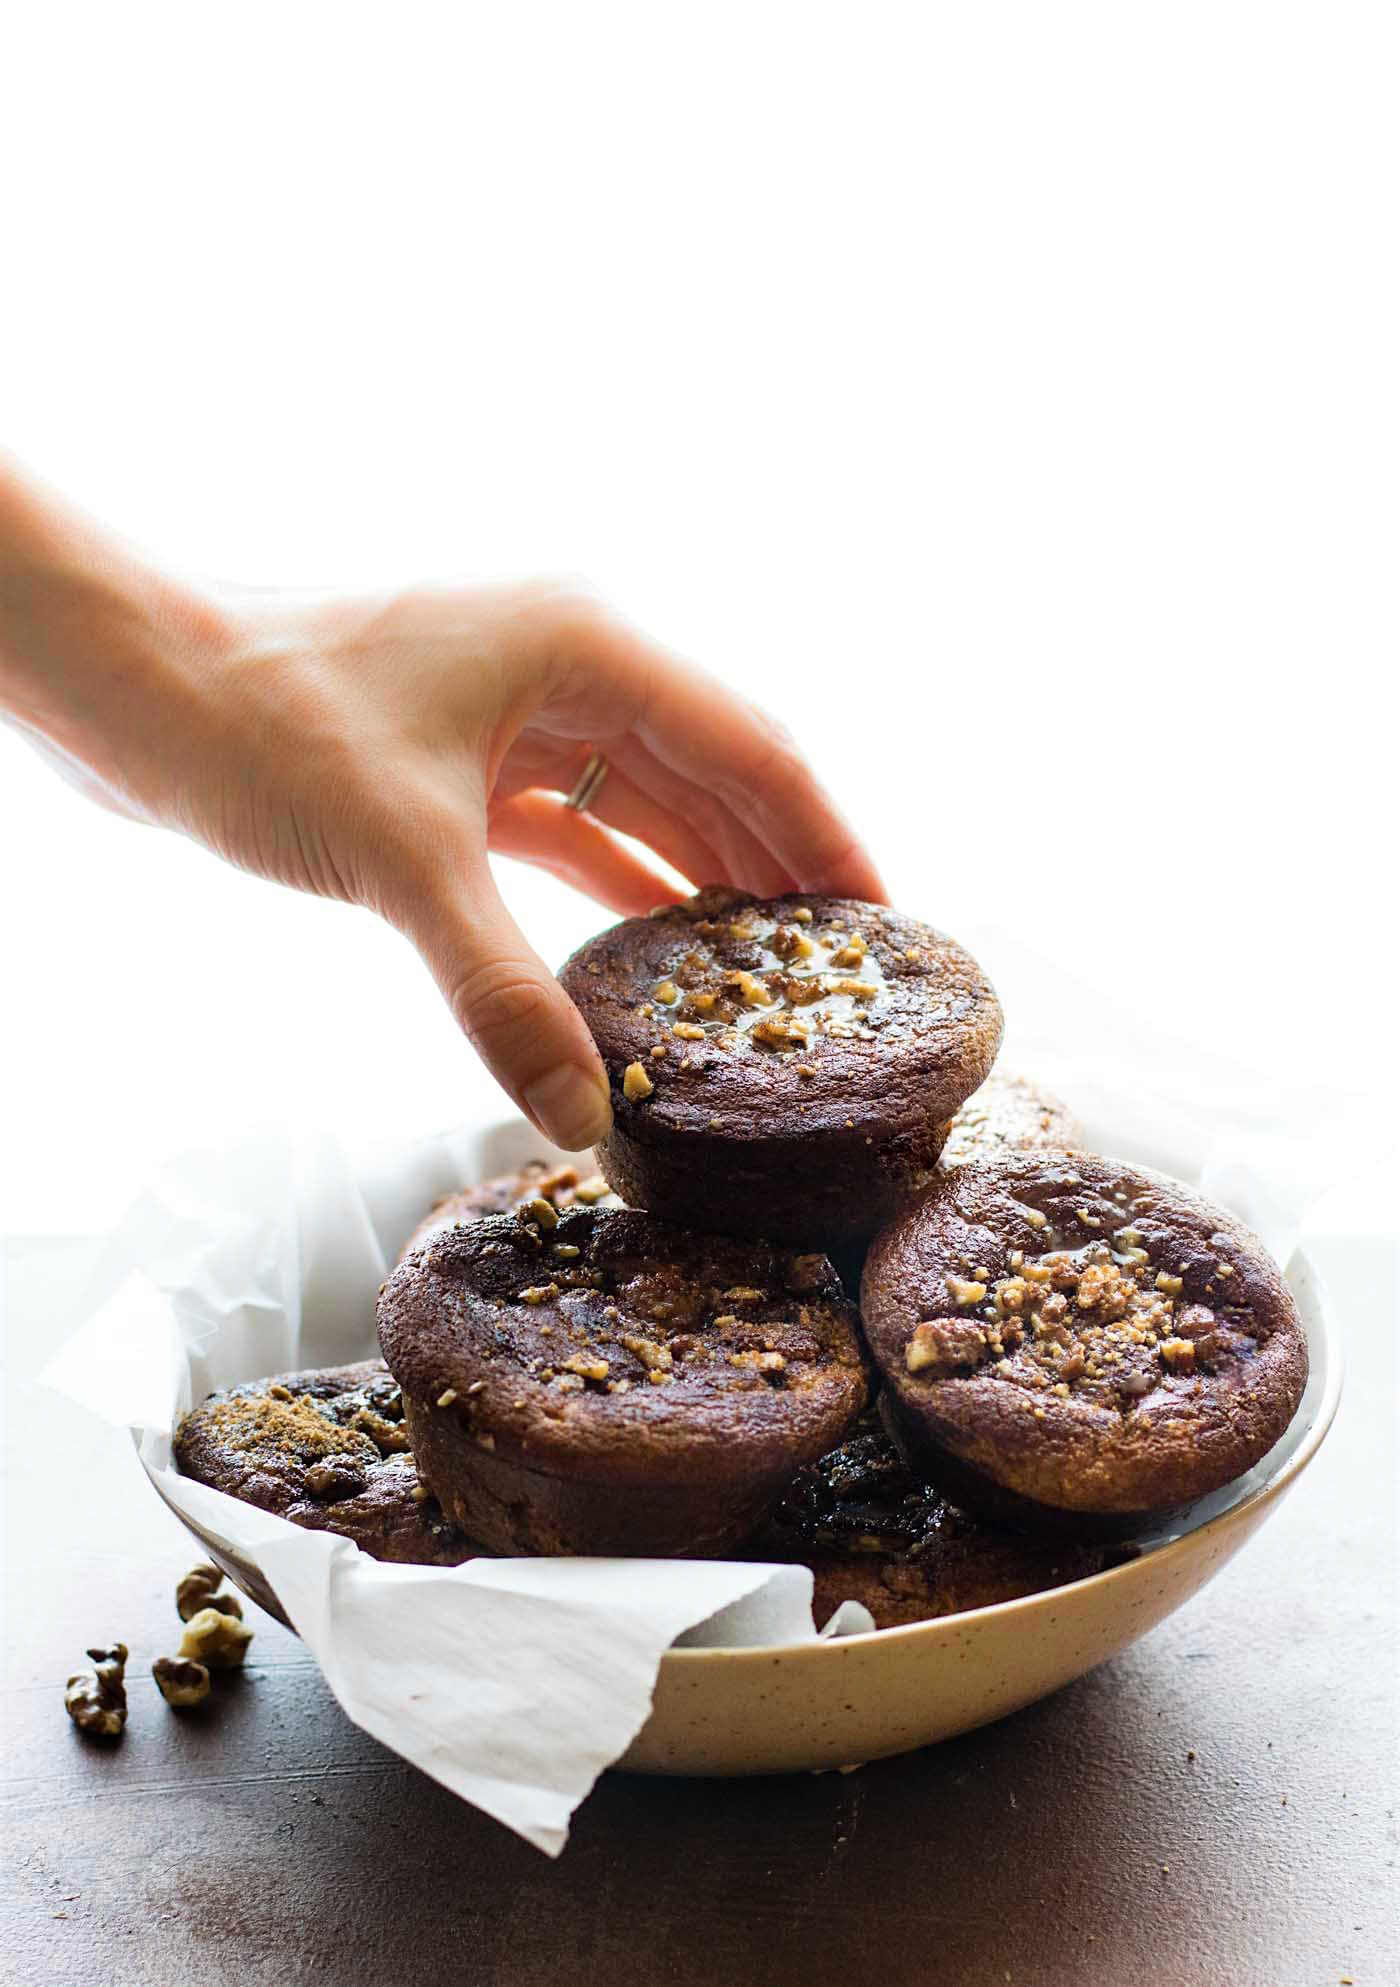 Paleo Sticky Coffee Cake Muffins {Blender Recipe}. a healthygluten freemini version of your favorite coffee cake! These Paleo Coffee Cake Muffins are made easy in the blender, baked in under 30 minutes, then topped with sticky maple nut topping.